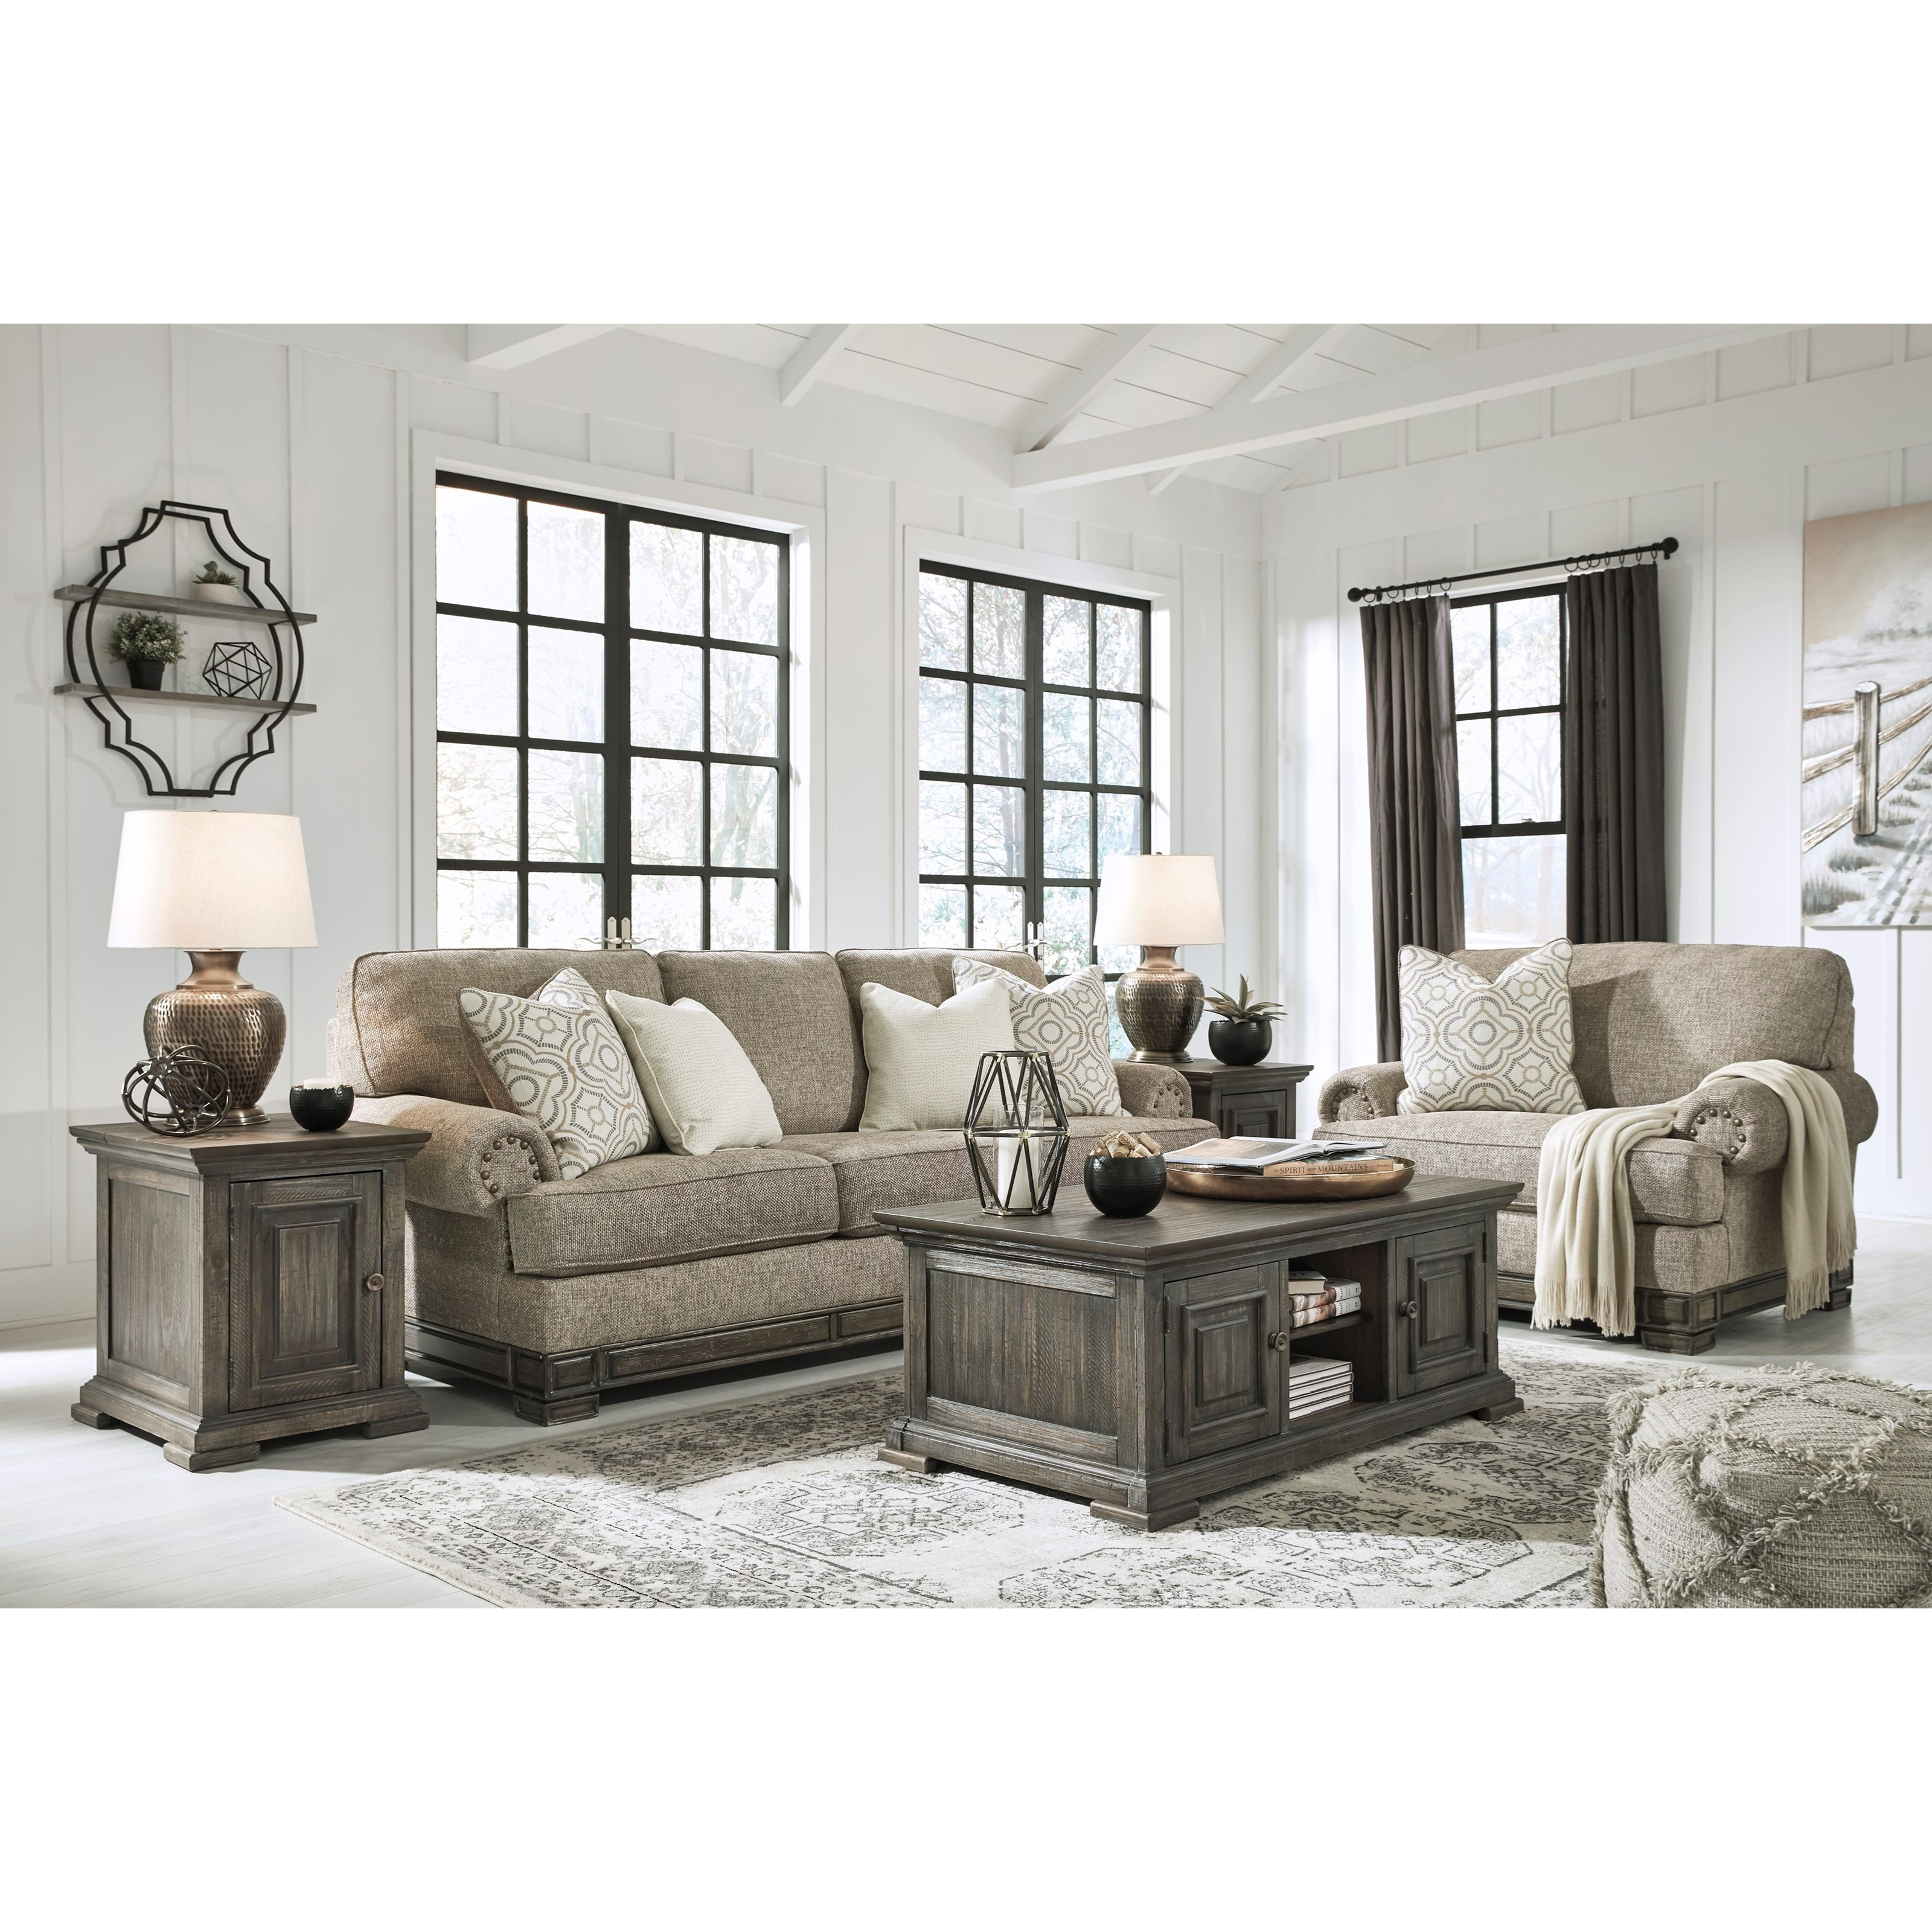 Einsgrove Stationary Living Room Group by Signature Design by Ashley at Sparks HomeStore